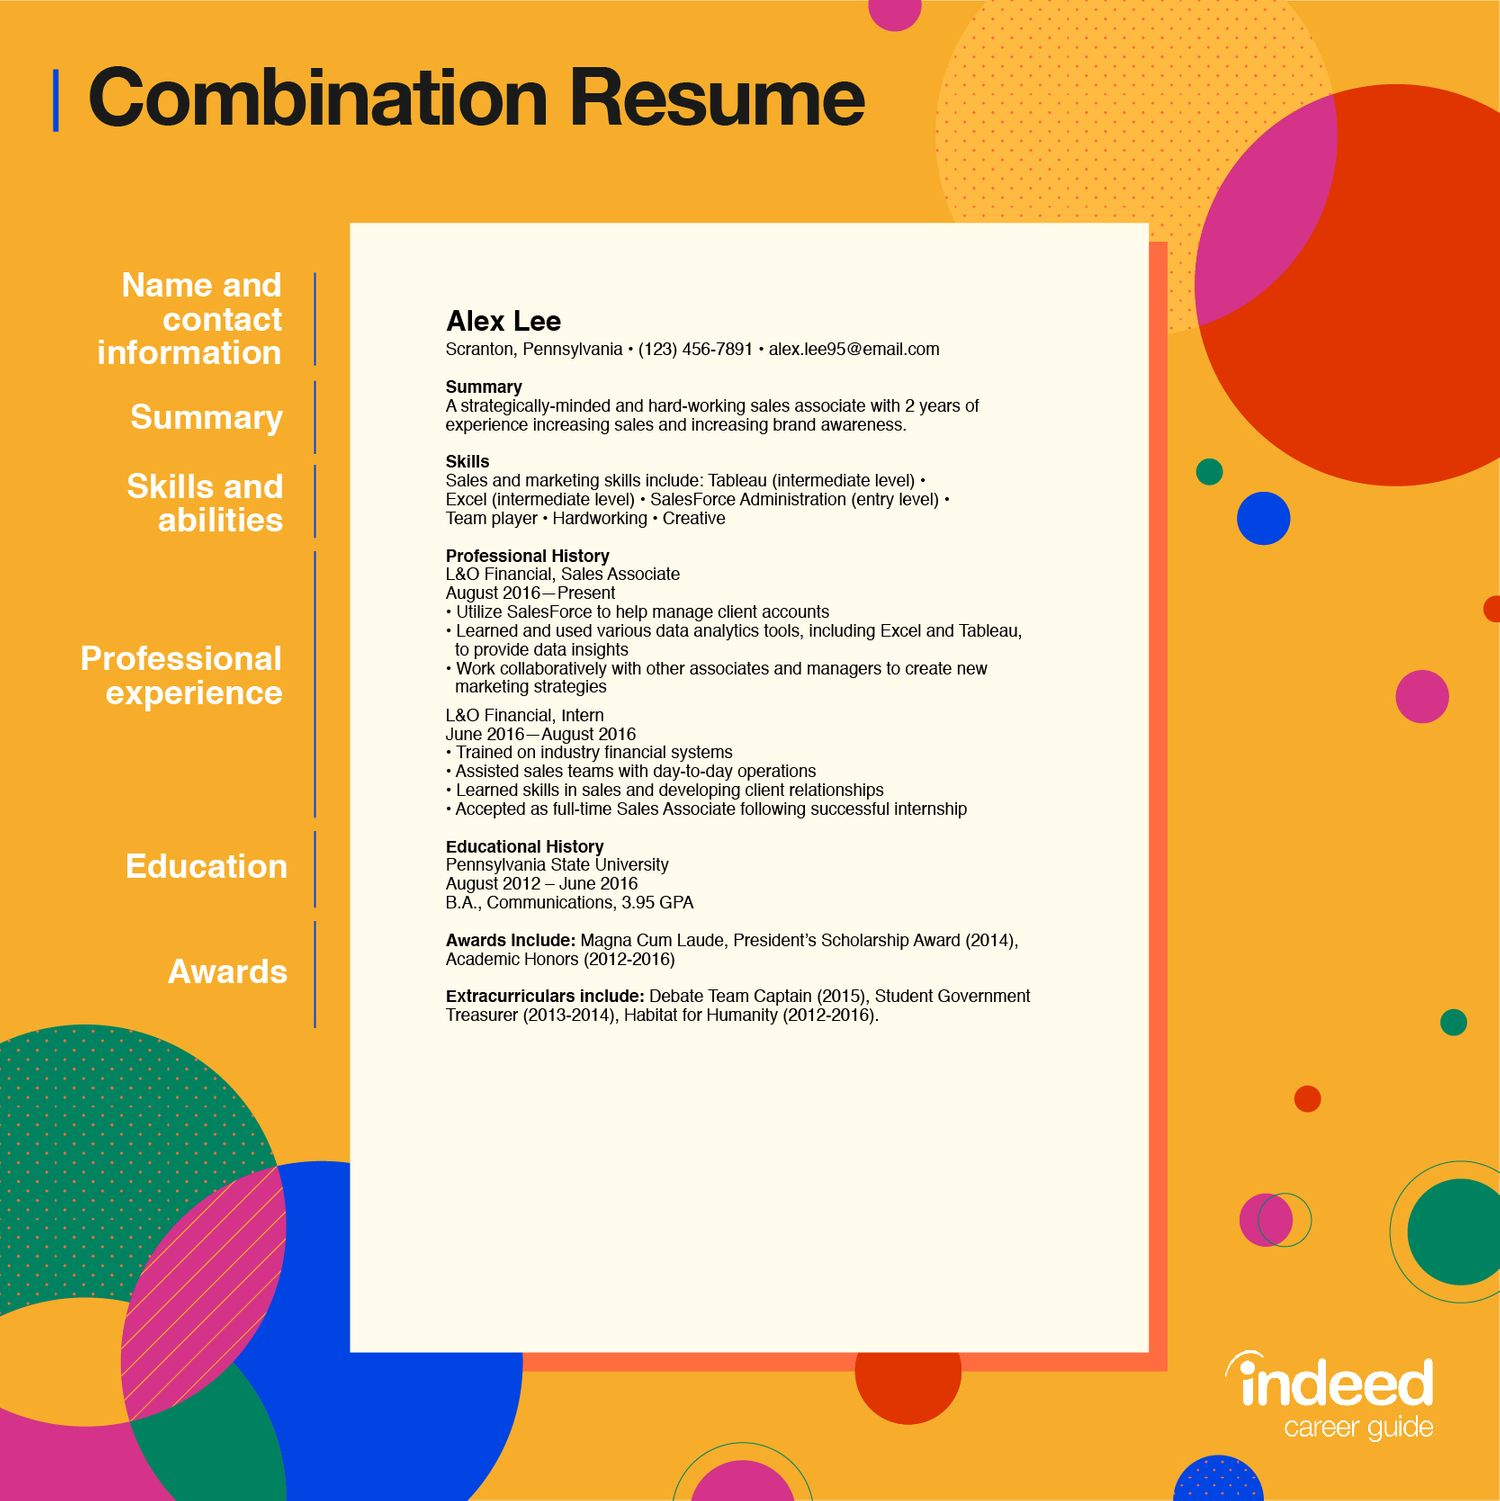 combination resume tips and examples indeed definition resized crew member description Resume Combination Resume Definition